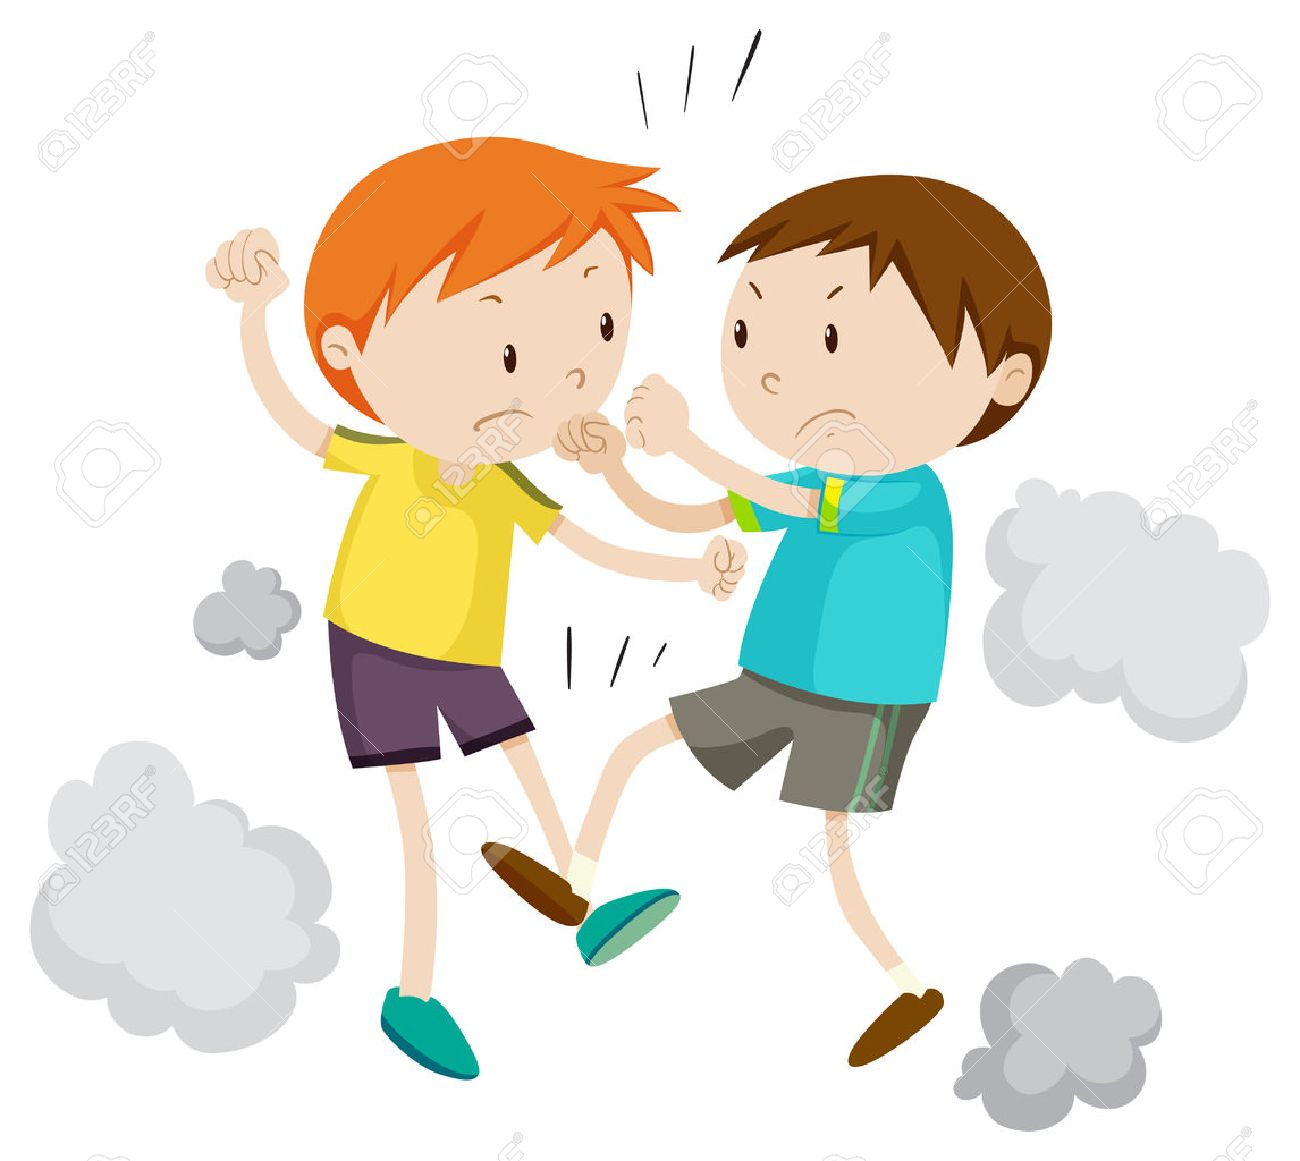 Two boy fighting each other illustration.